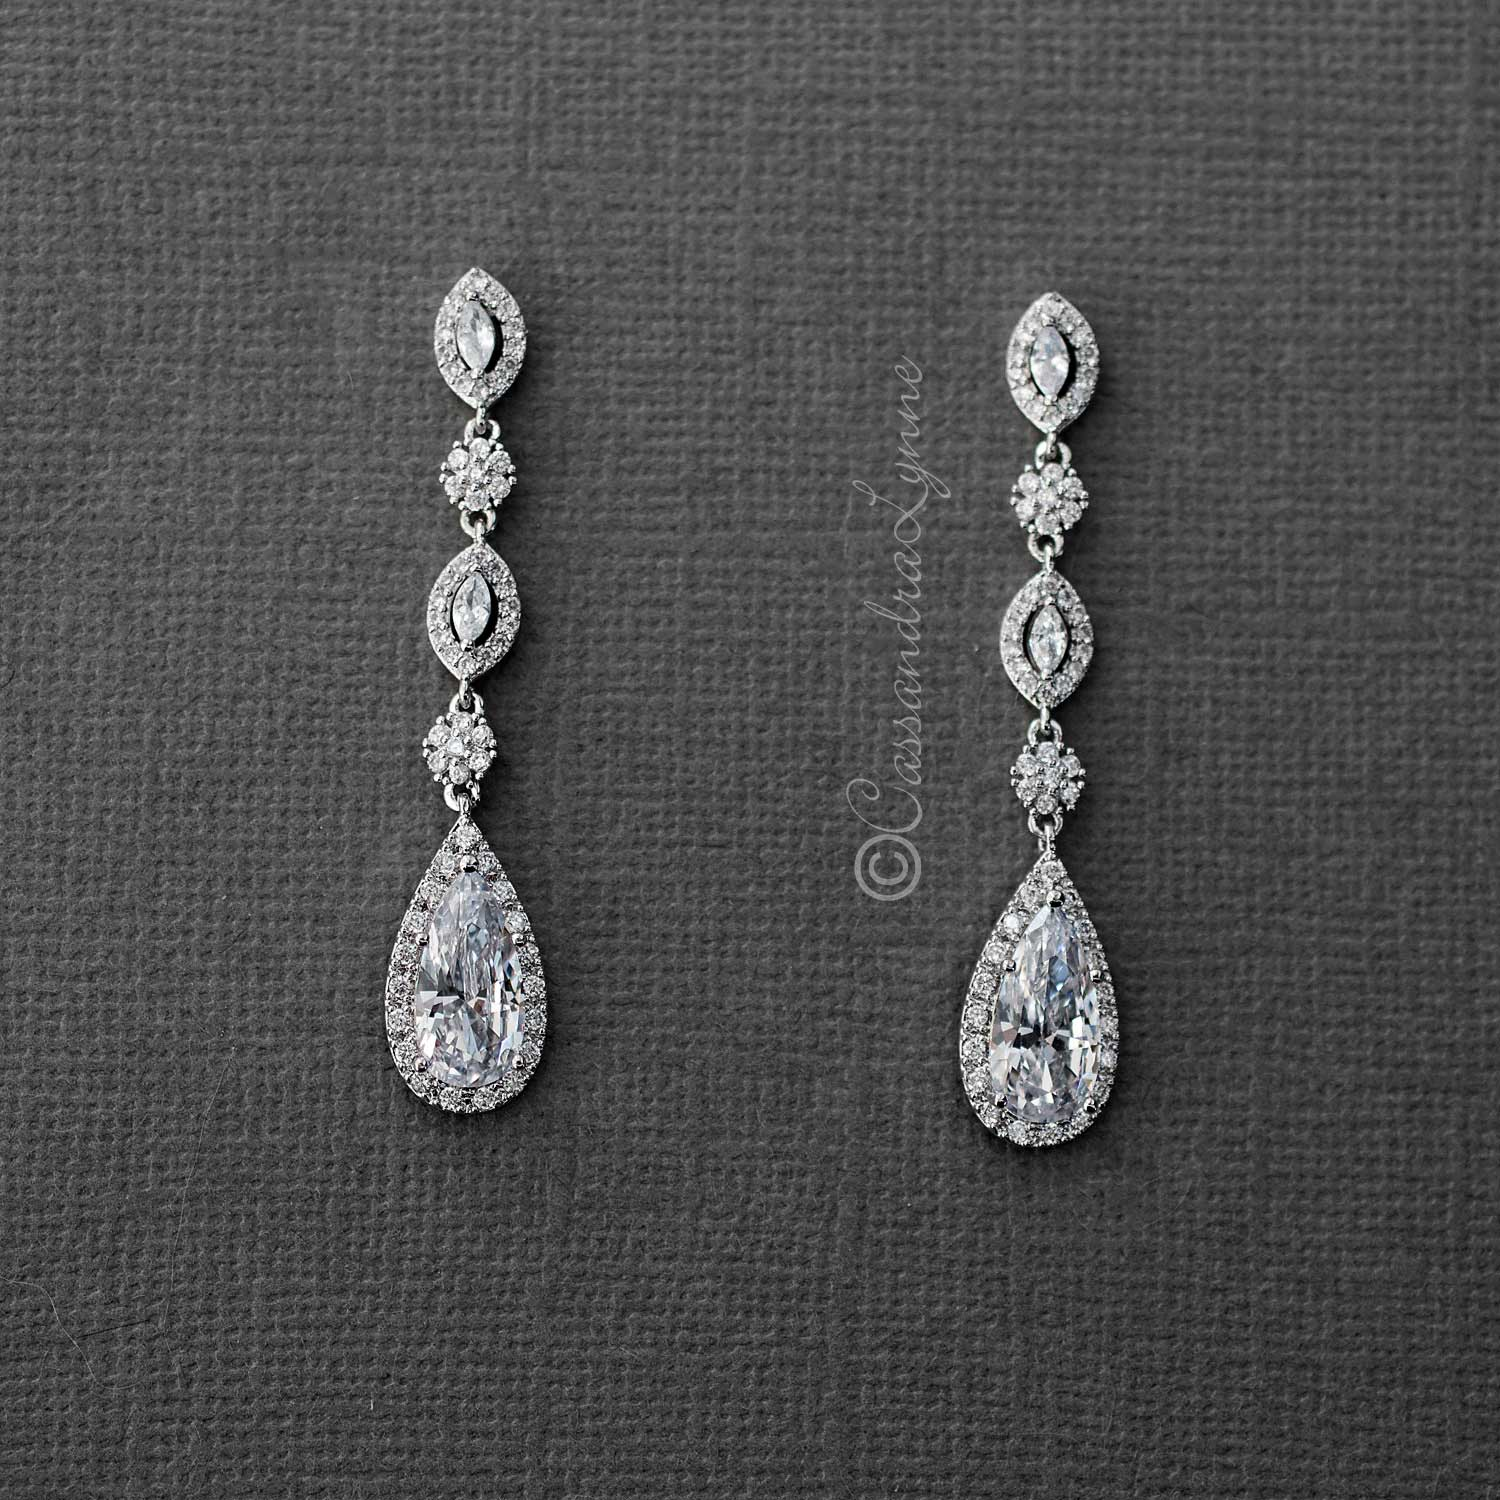 CZ Wedding Earrings of Elongated Teardrops